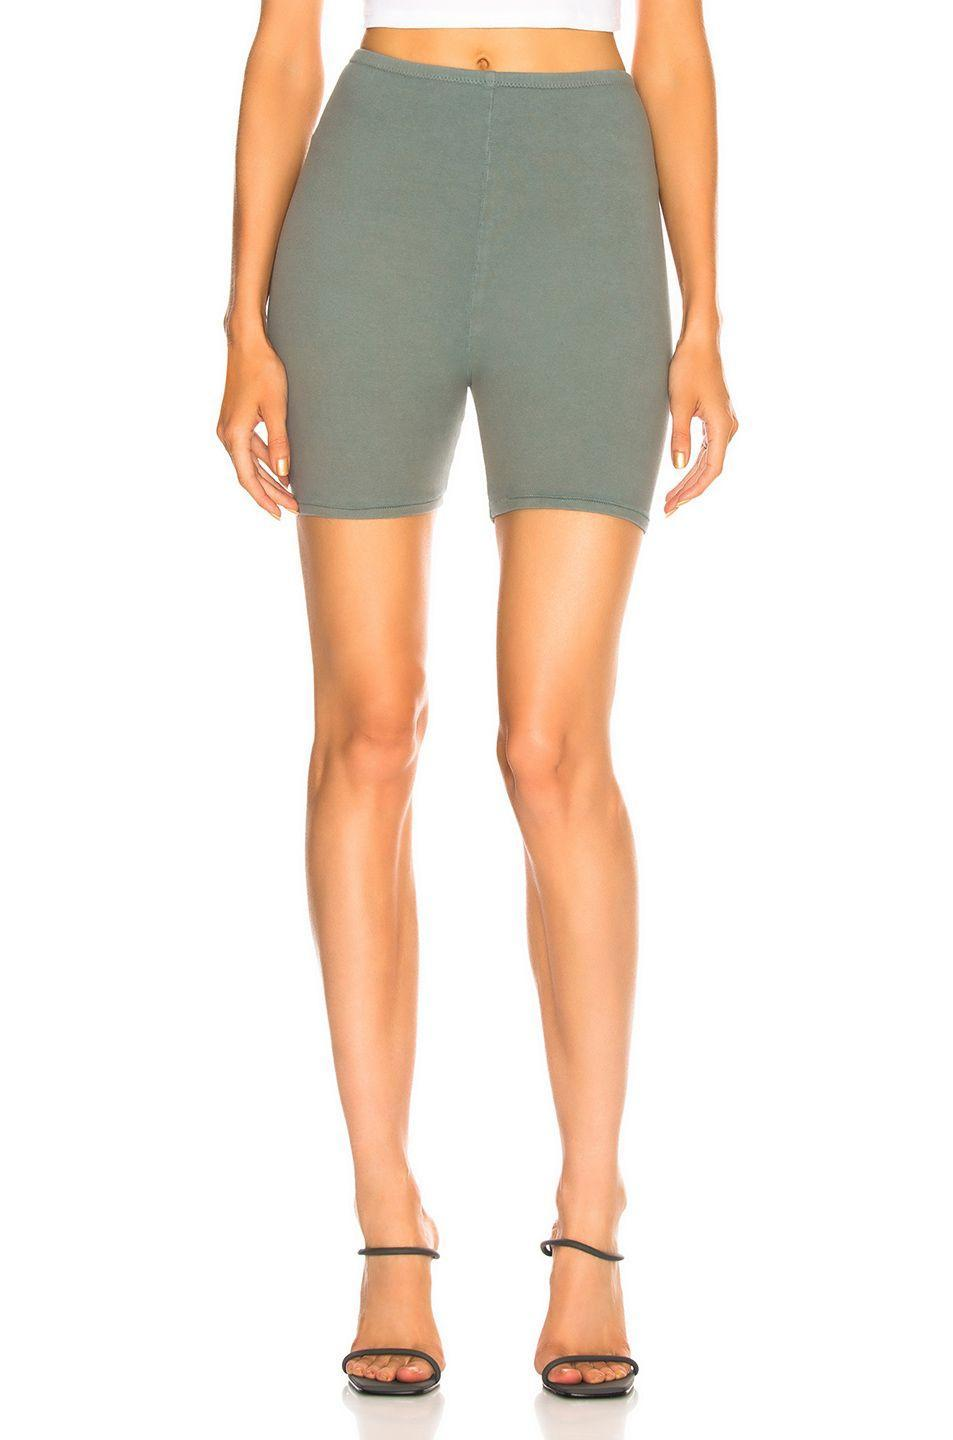 I can't believe even I have hopped on board with bike shorts. Available in sizes XS to L.